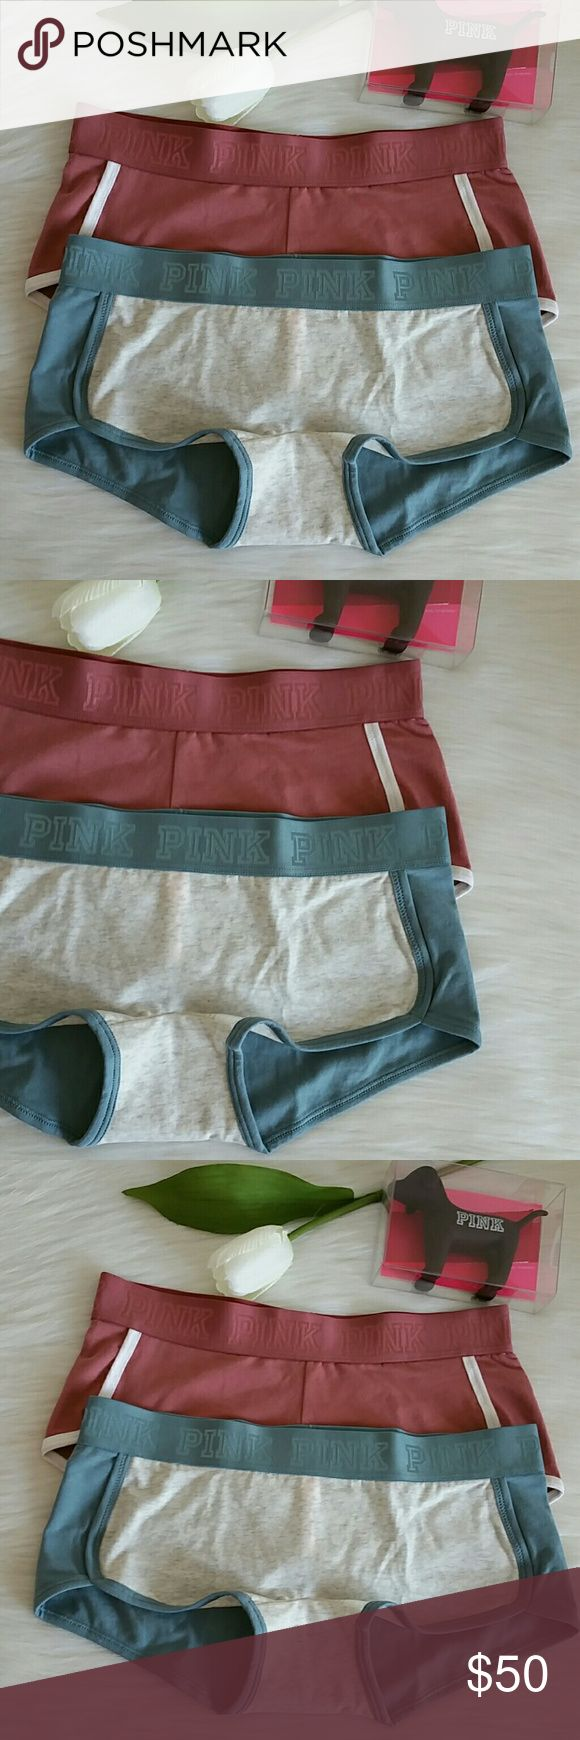 2 Nwt Pink Vs logo boyshort size M. Brand new never worn pink victoria's secret logo boyshort size M   Smoke and pet free home.  Fast shipping + extra gift.  I don't trade love.  Available PINK Victoria's Secret Intimates & Sleepwear Panties